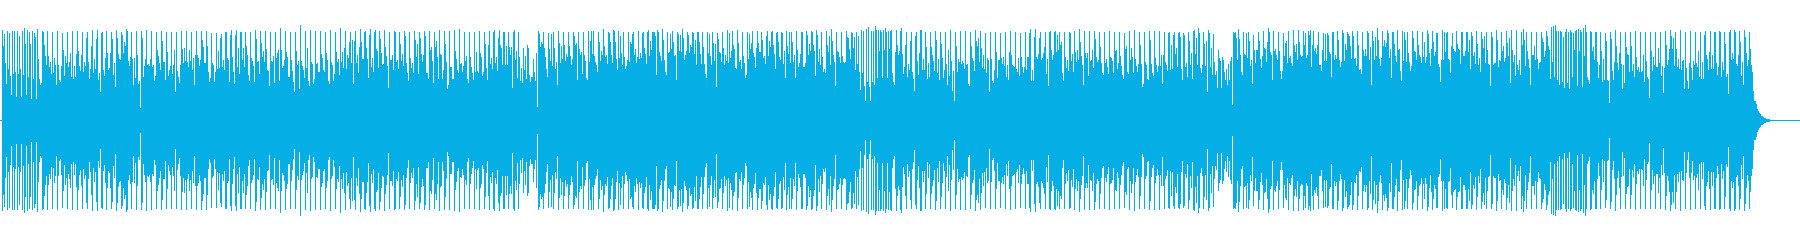 Bizarre and mysterious techno BGM's reproduced waveform